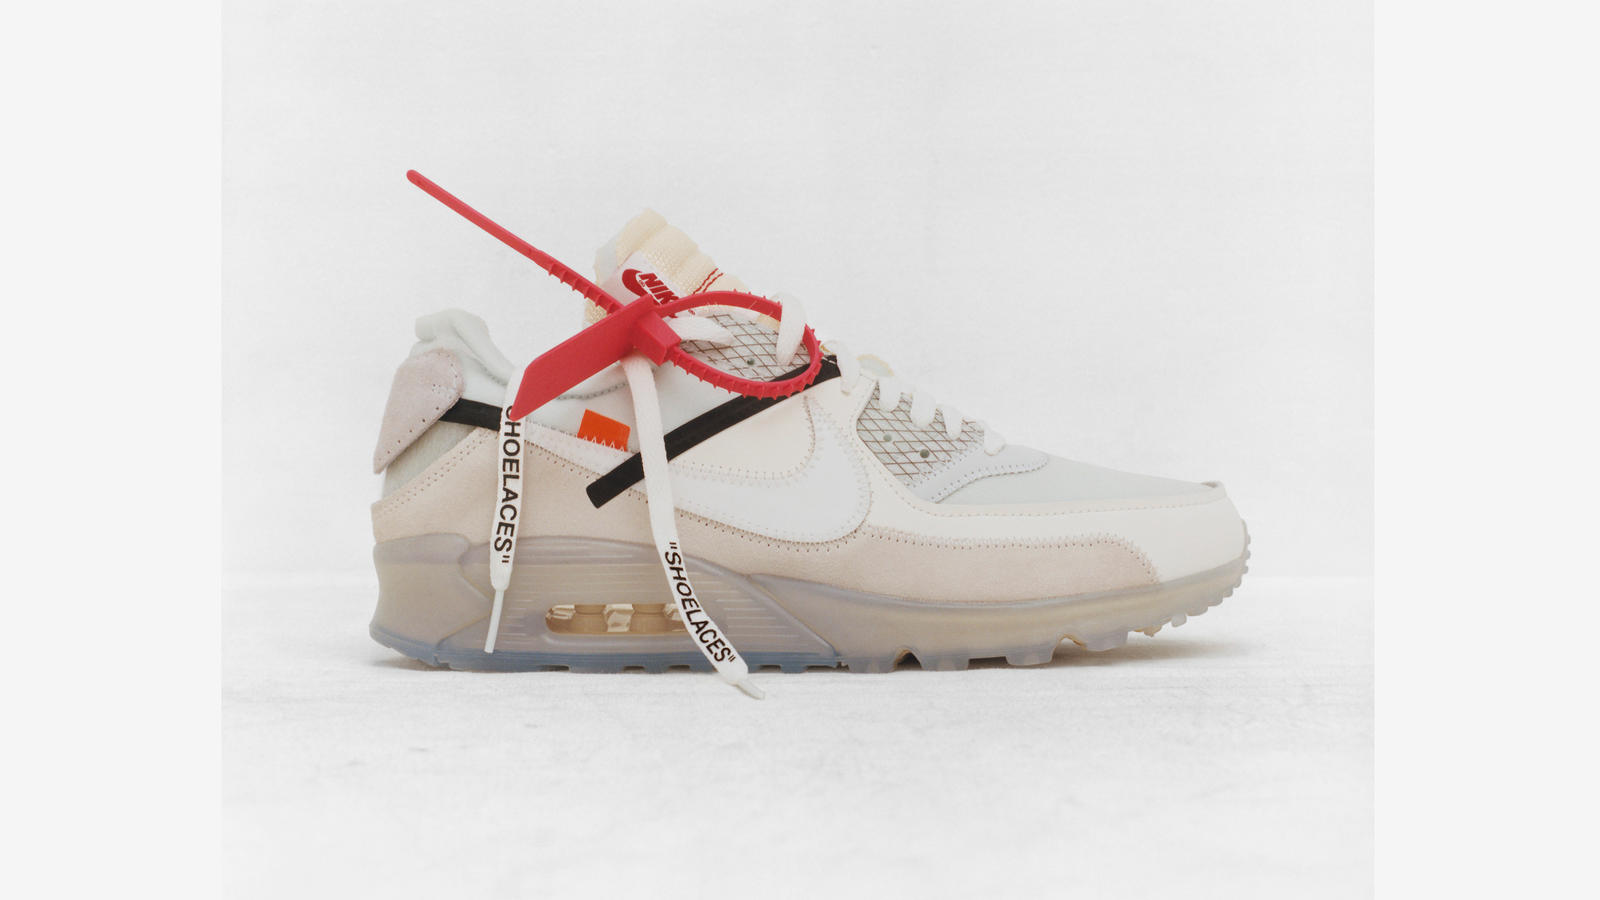 9322cba41367 Cop Here s The Ten How Collection Abloh s Virgil To Revolt Nike WFqwg6FTU